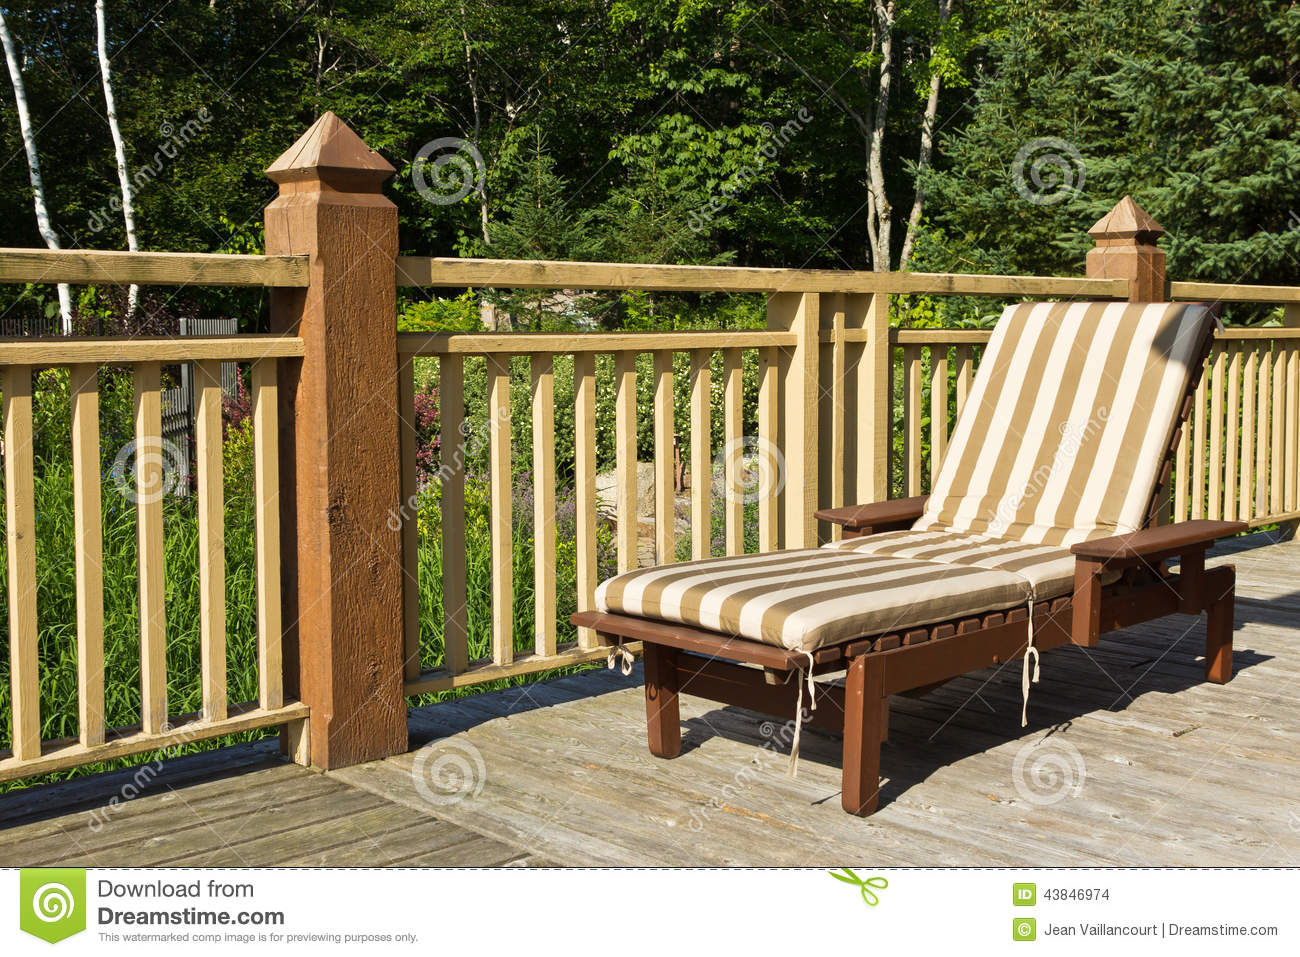 Sunbathing Chairs Sunbathing Chair On A Wooden Deck Stock Photo Image